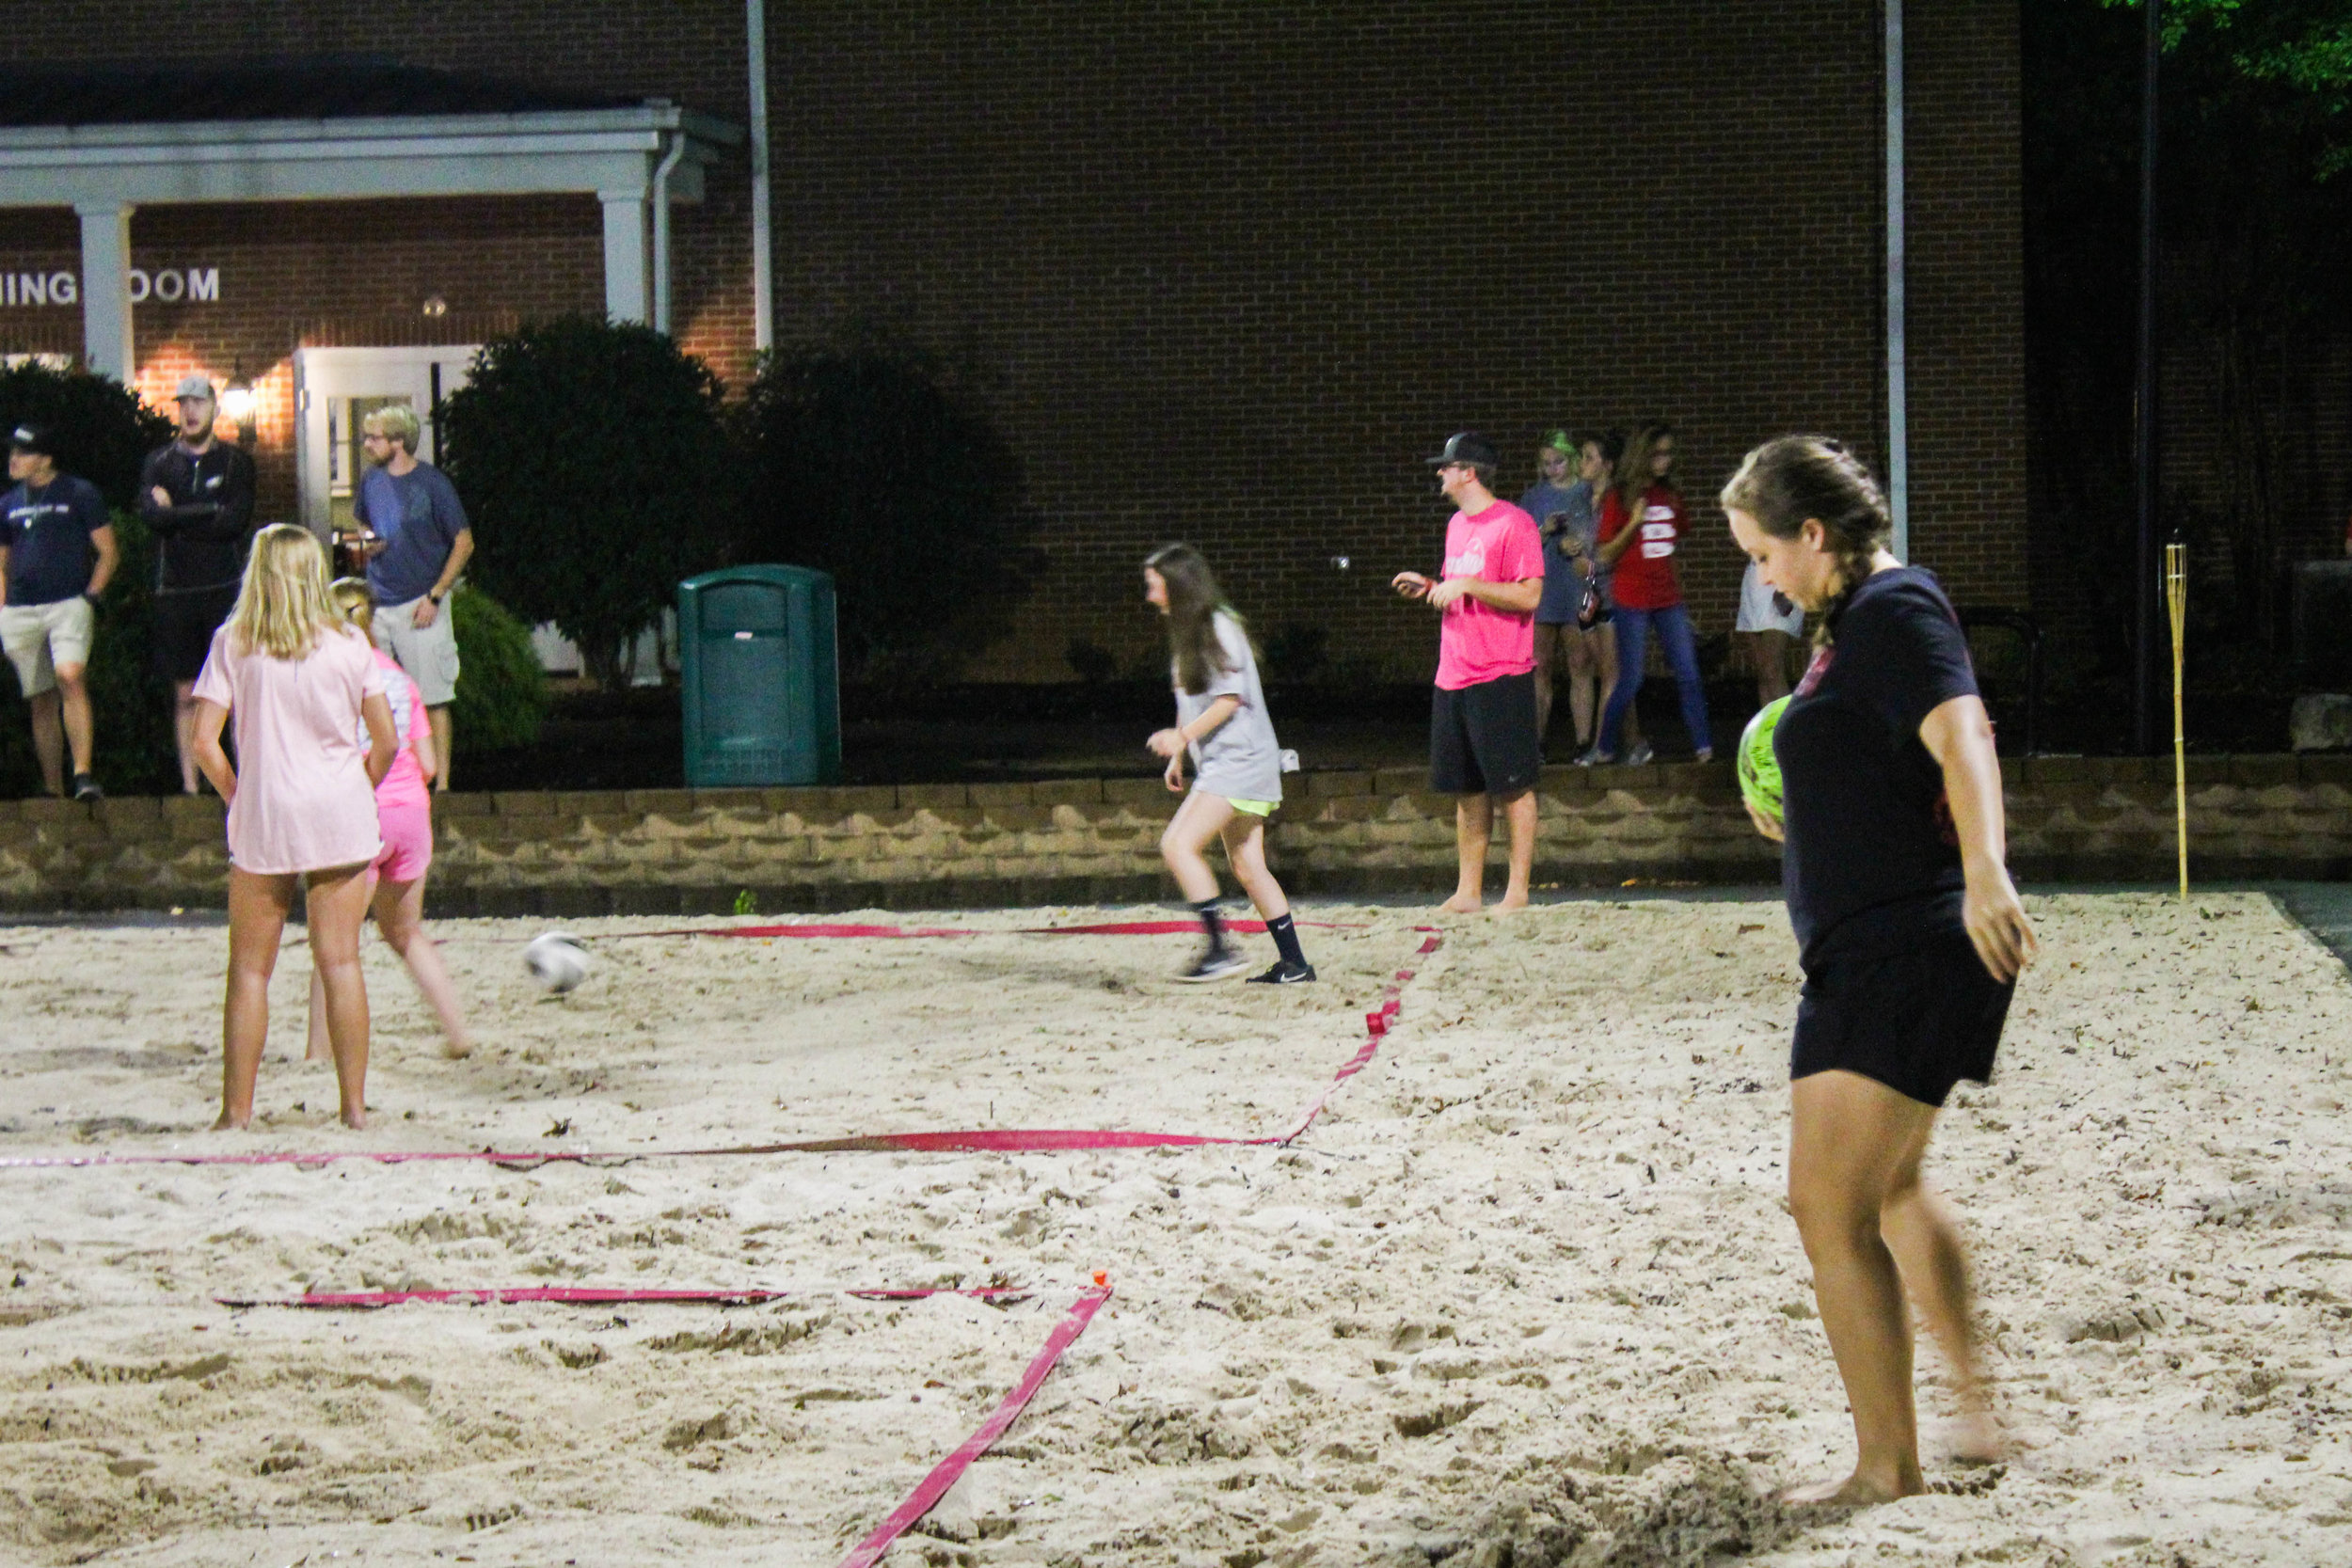 A member of the animal science club gets ready to serve the ball toward the campus ambassador team.